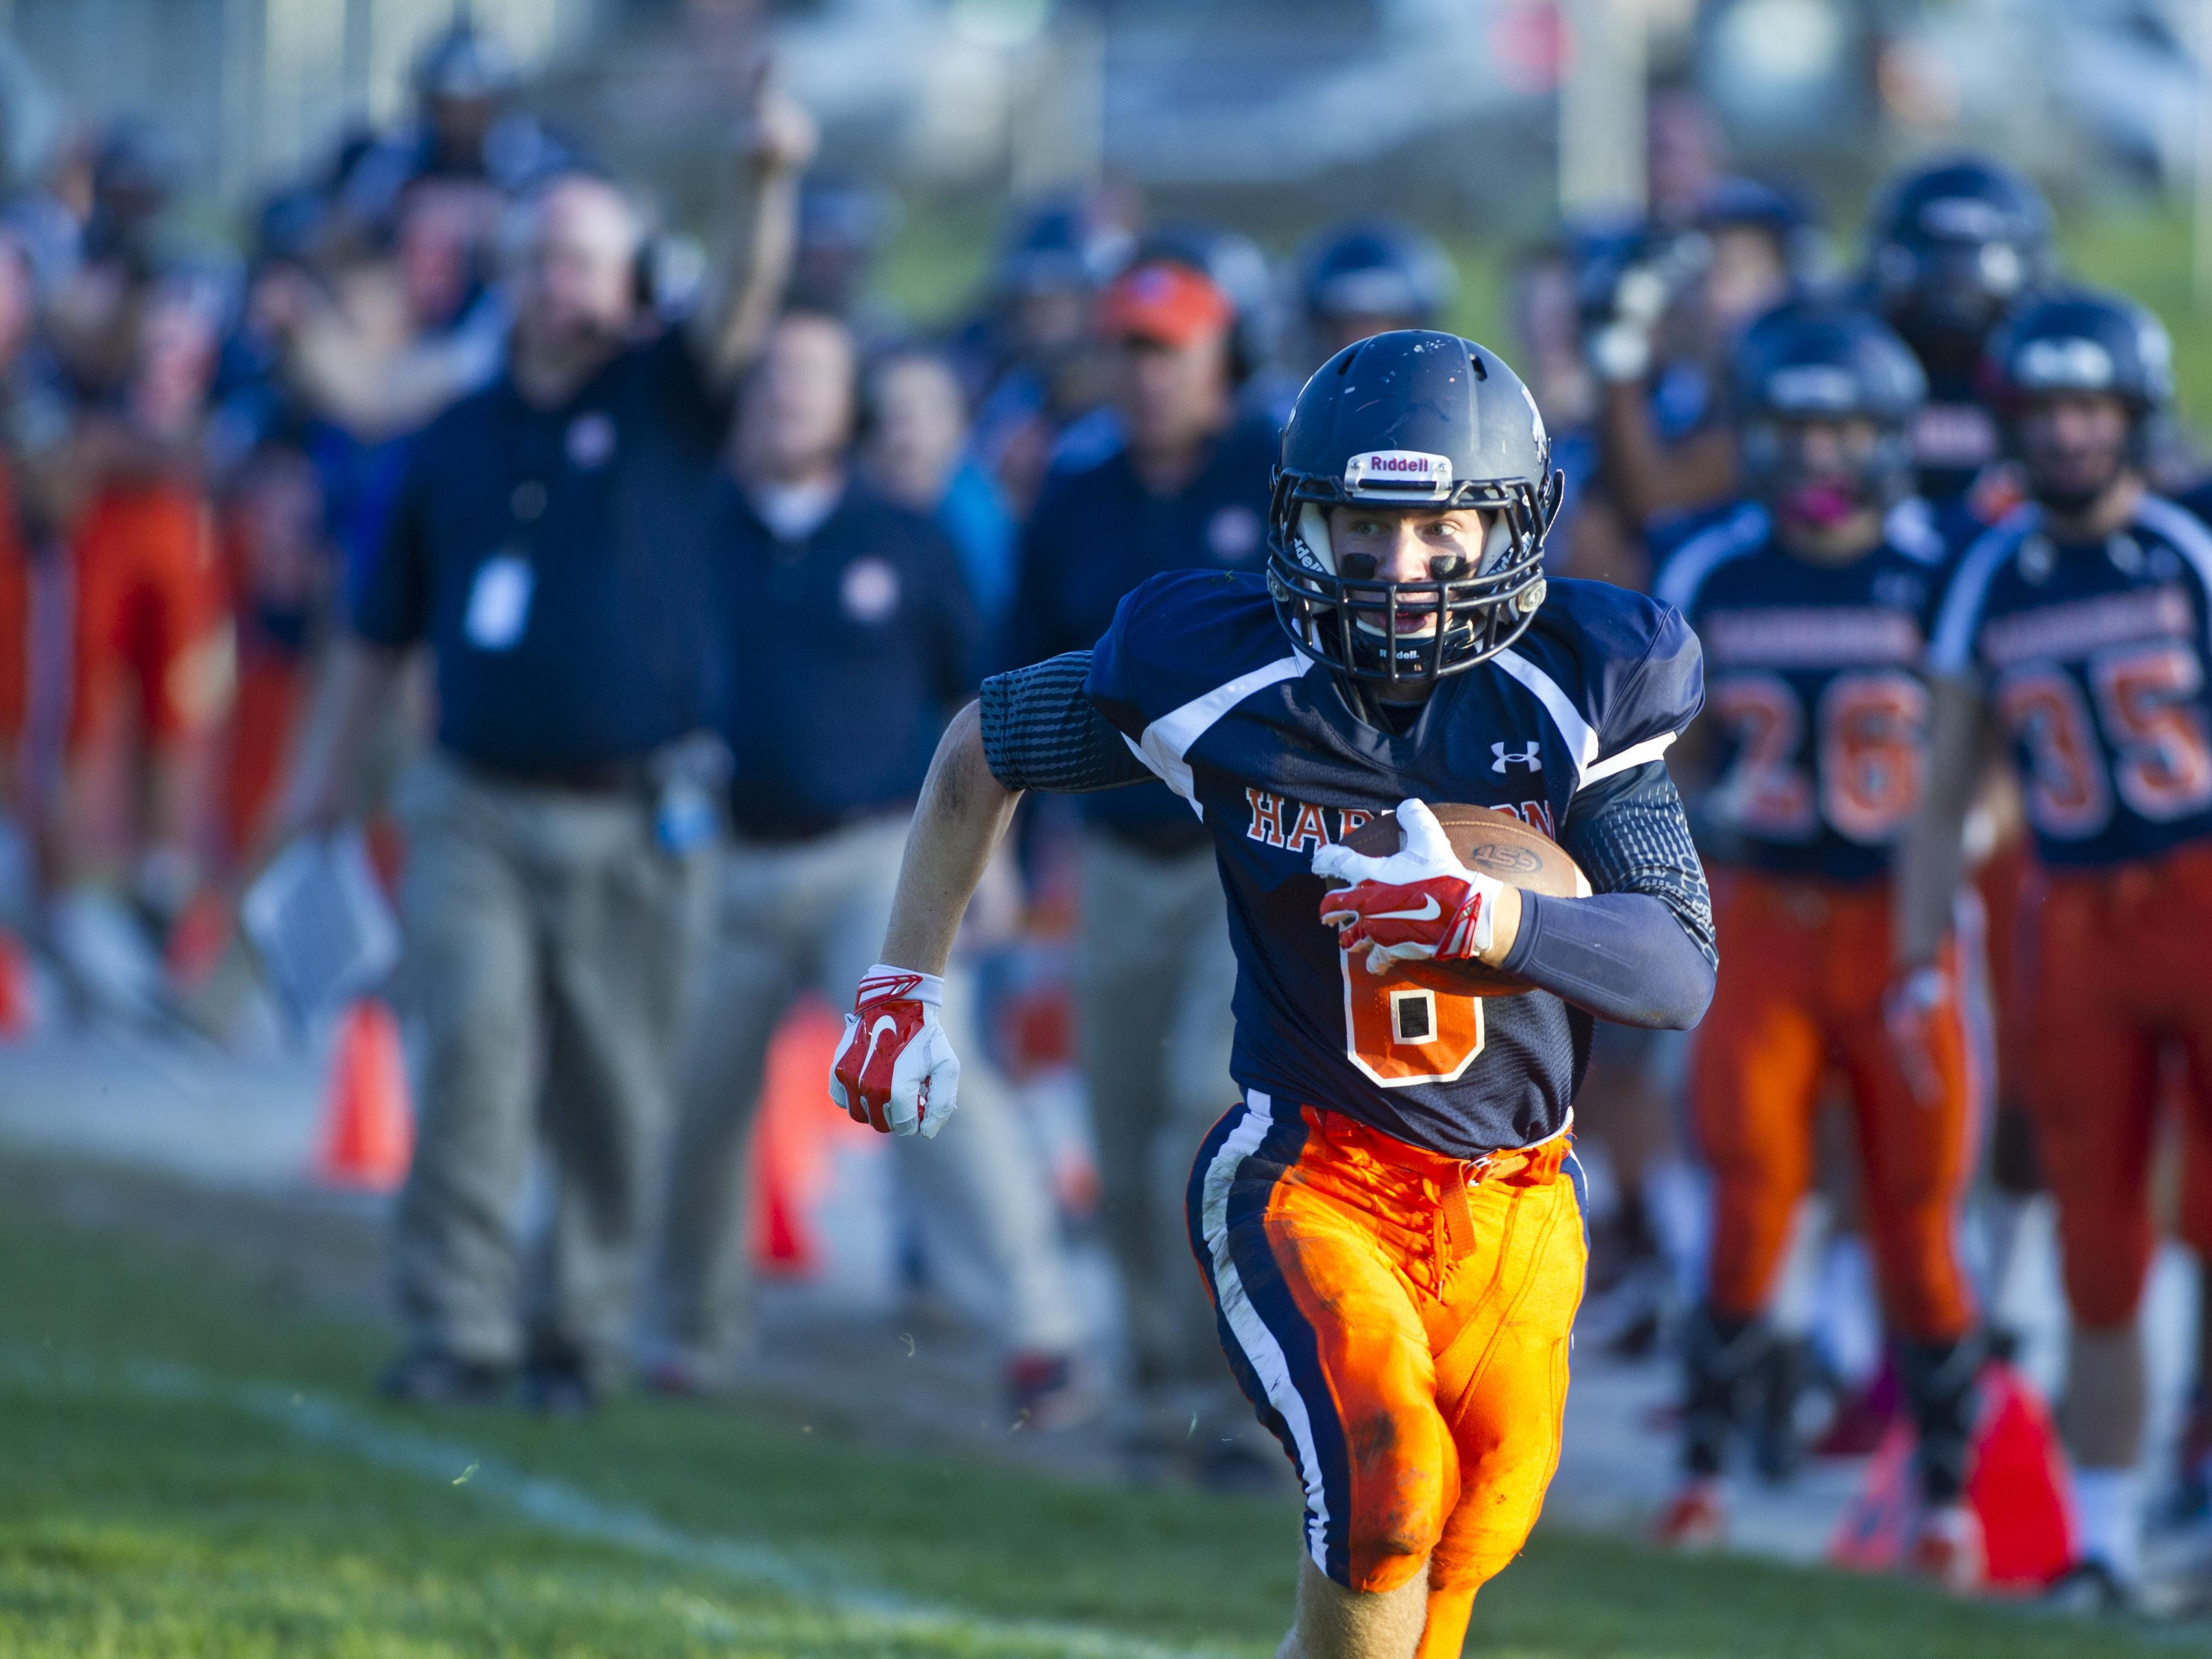 Harrison's Tanner Watkins takes off for a touchdown after intercepting a Anderson pass on Sept. 19.